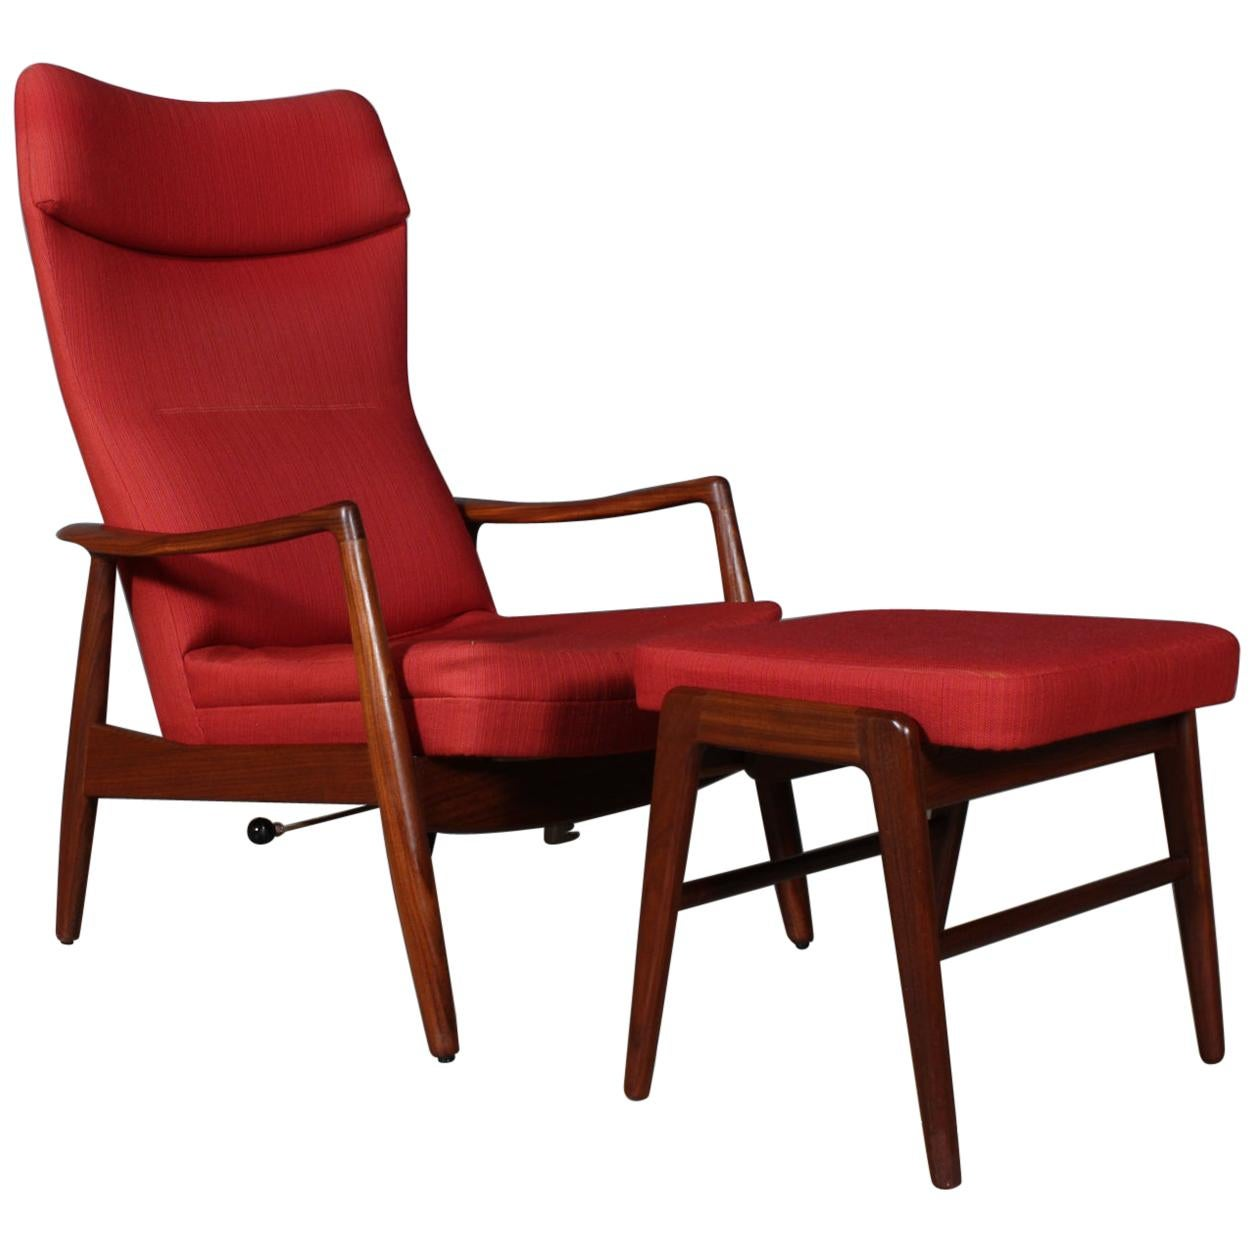 Madsen & Schubell Lounge Chair with Ottoman